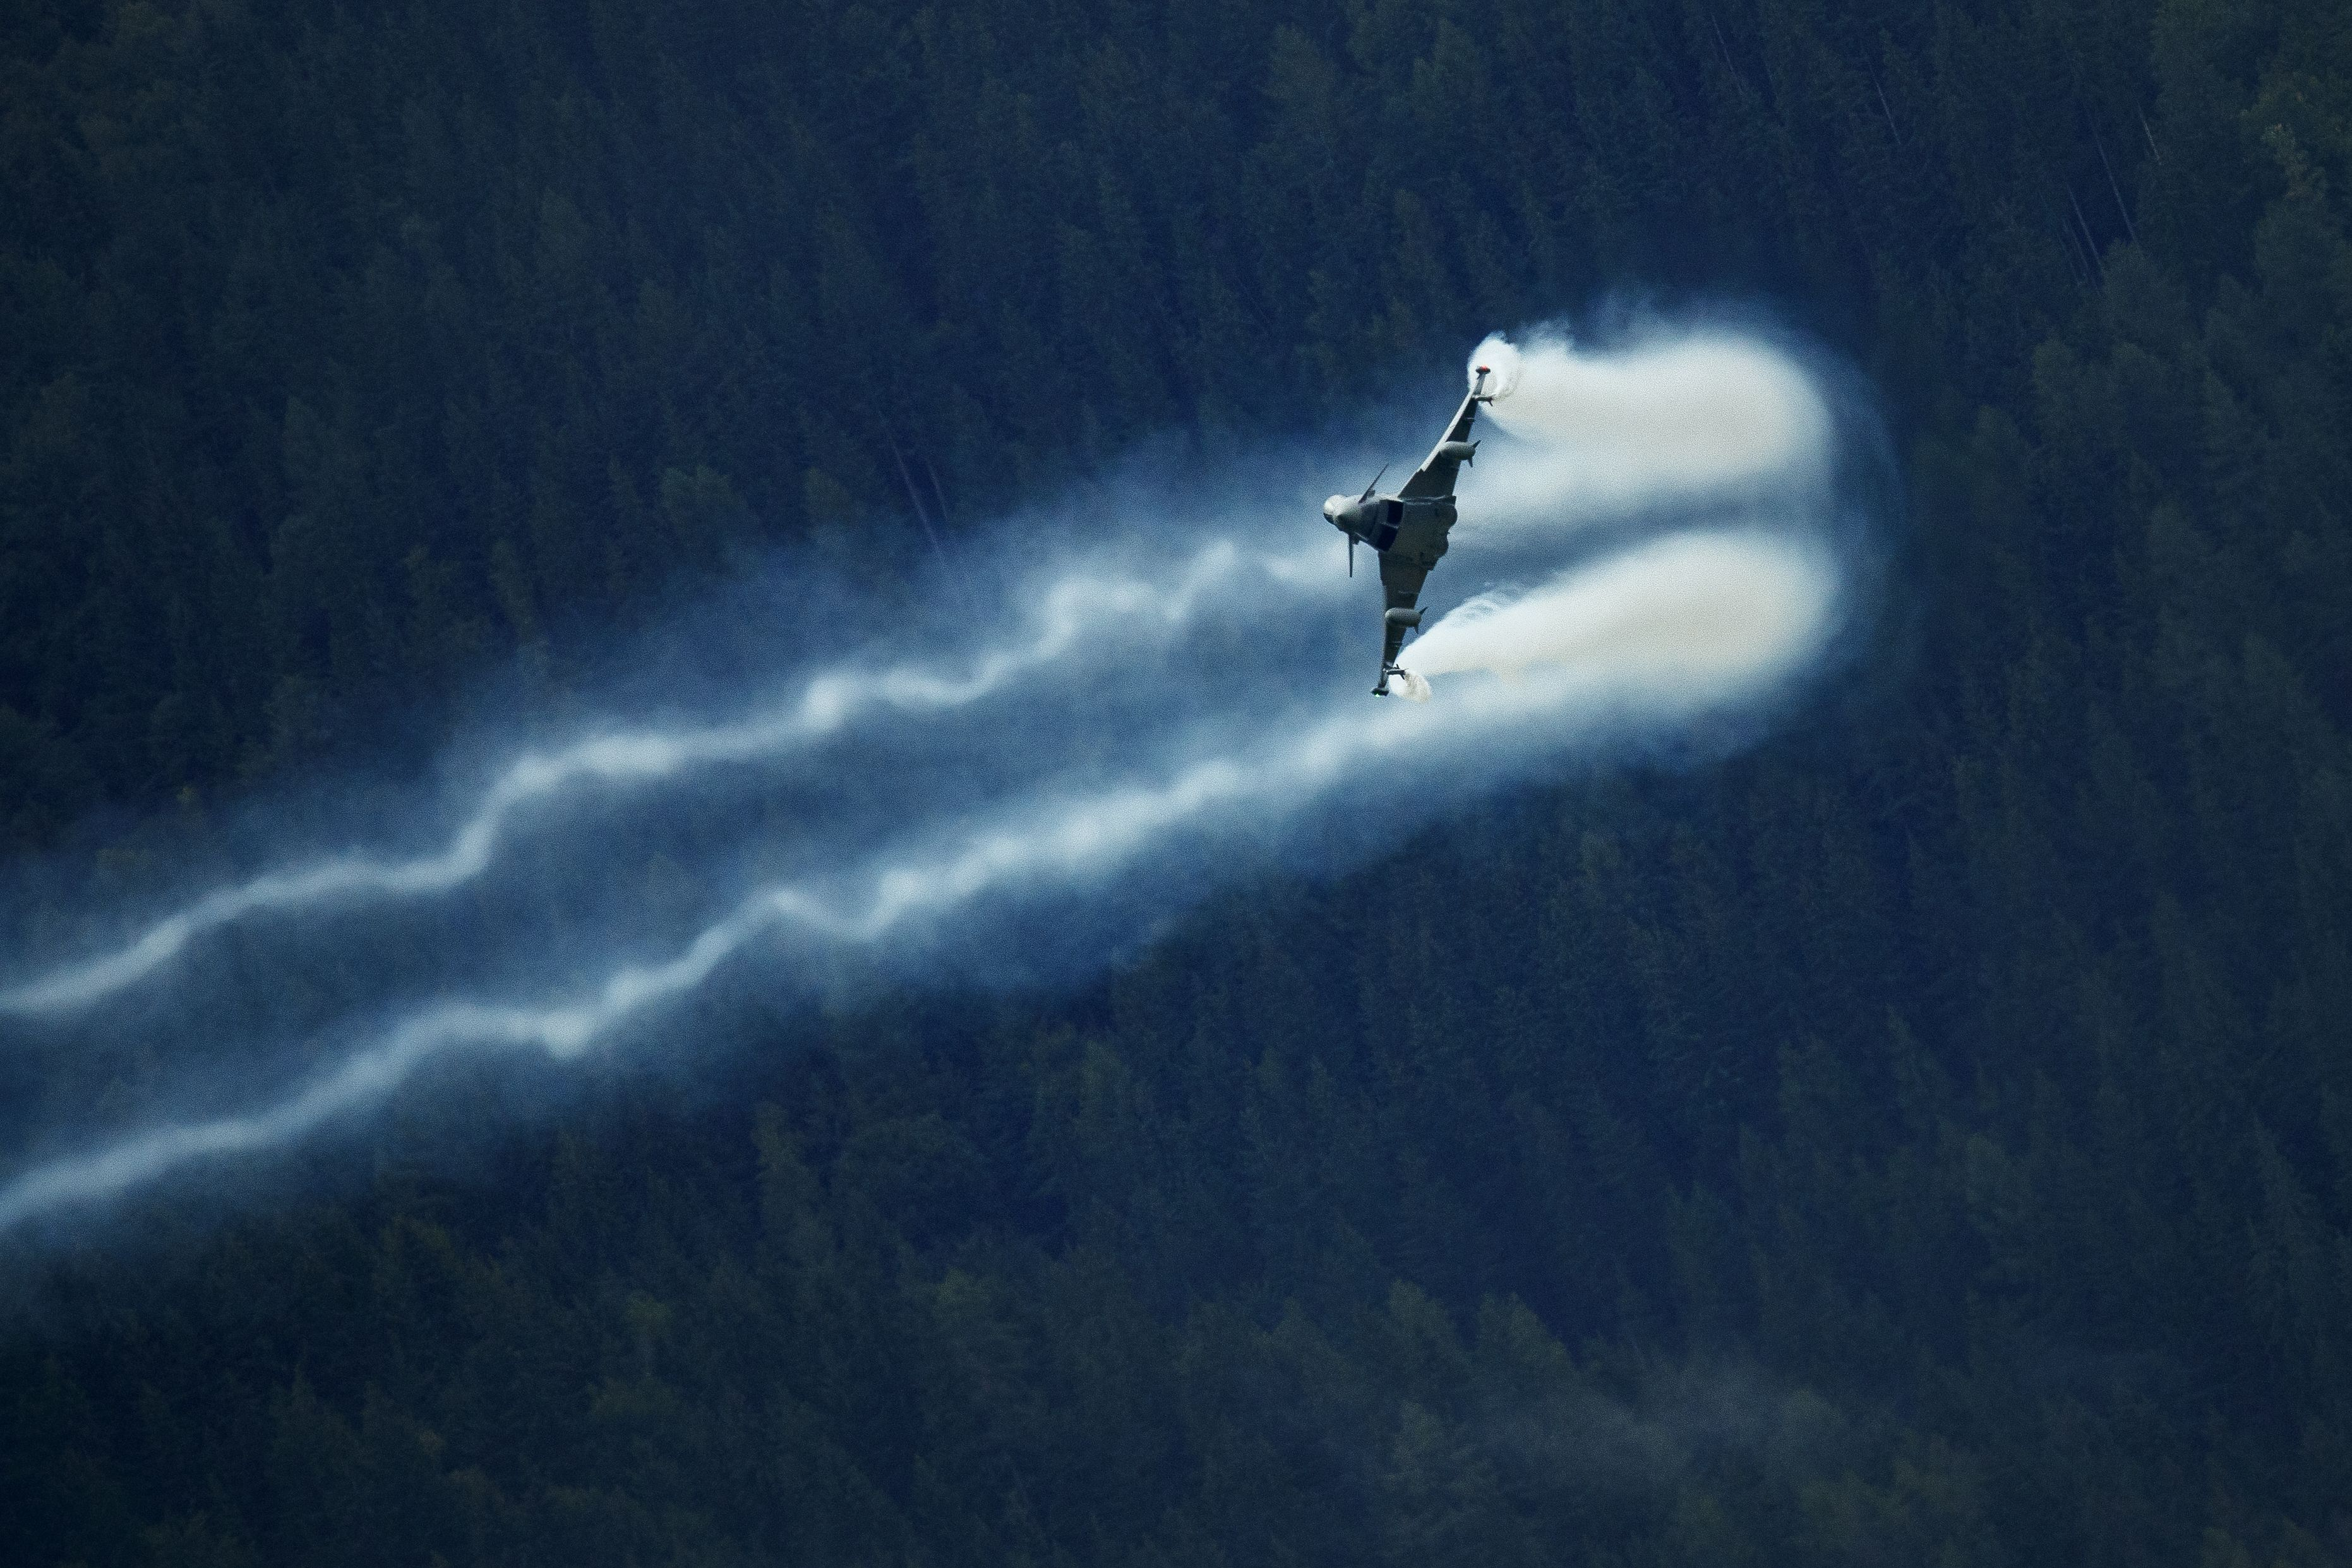 Indonesia wrote to Austria expressing its interest in acquiring the European country's entire fleet of 15 Eurofighter Typhoon fighter jets. Indonesia had been seeking a fighter aircraft to serve alongside its fleet of 23 refurbished early-block Lockheed Martin F-16C/D Fighting Falcon jets. (Erwin Scheriau/AFP via Getty Images)